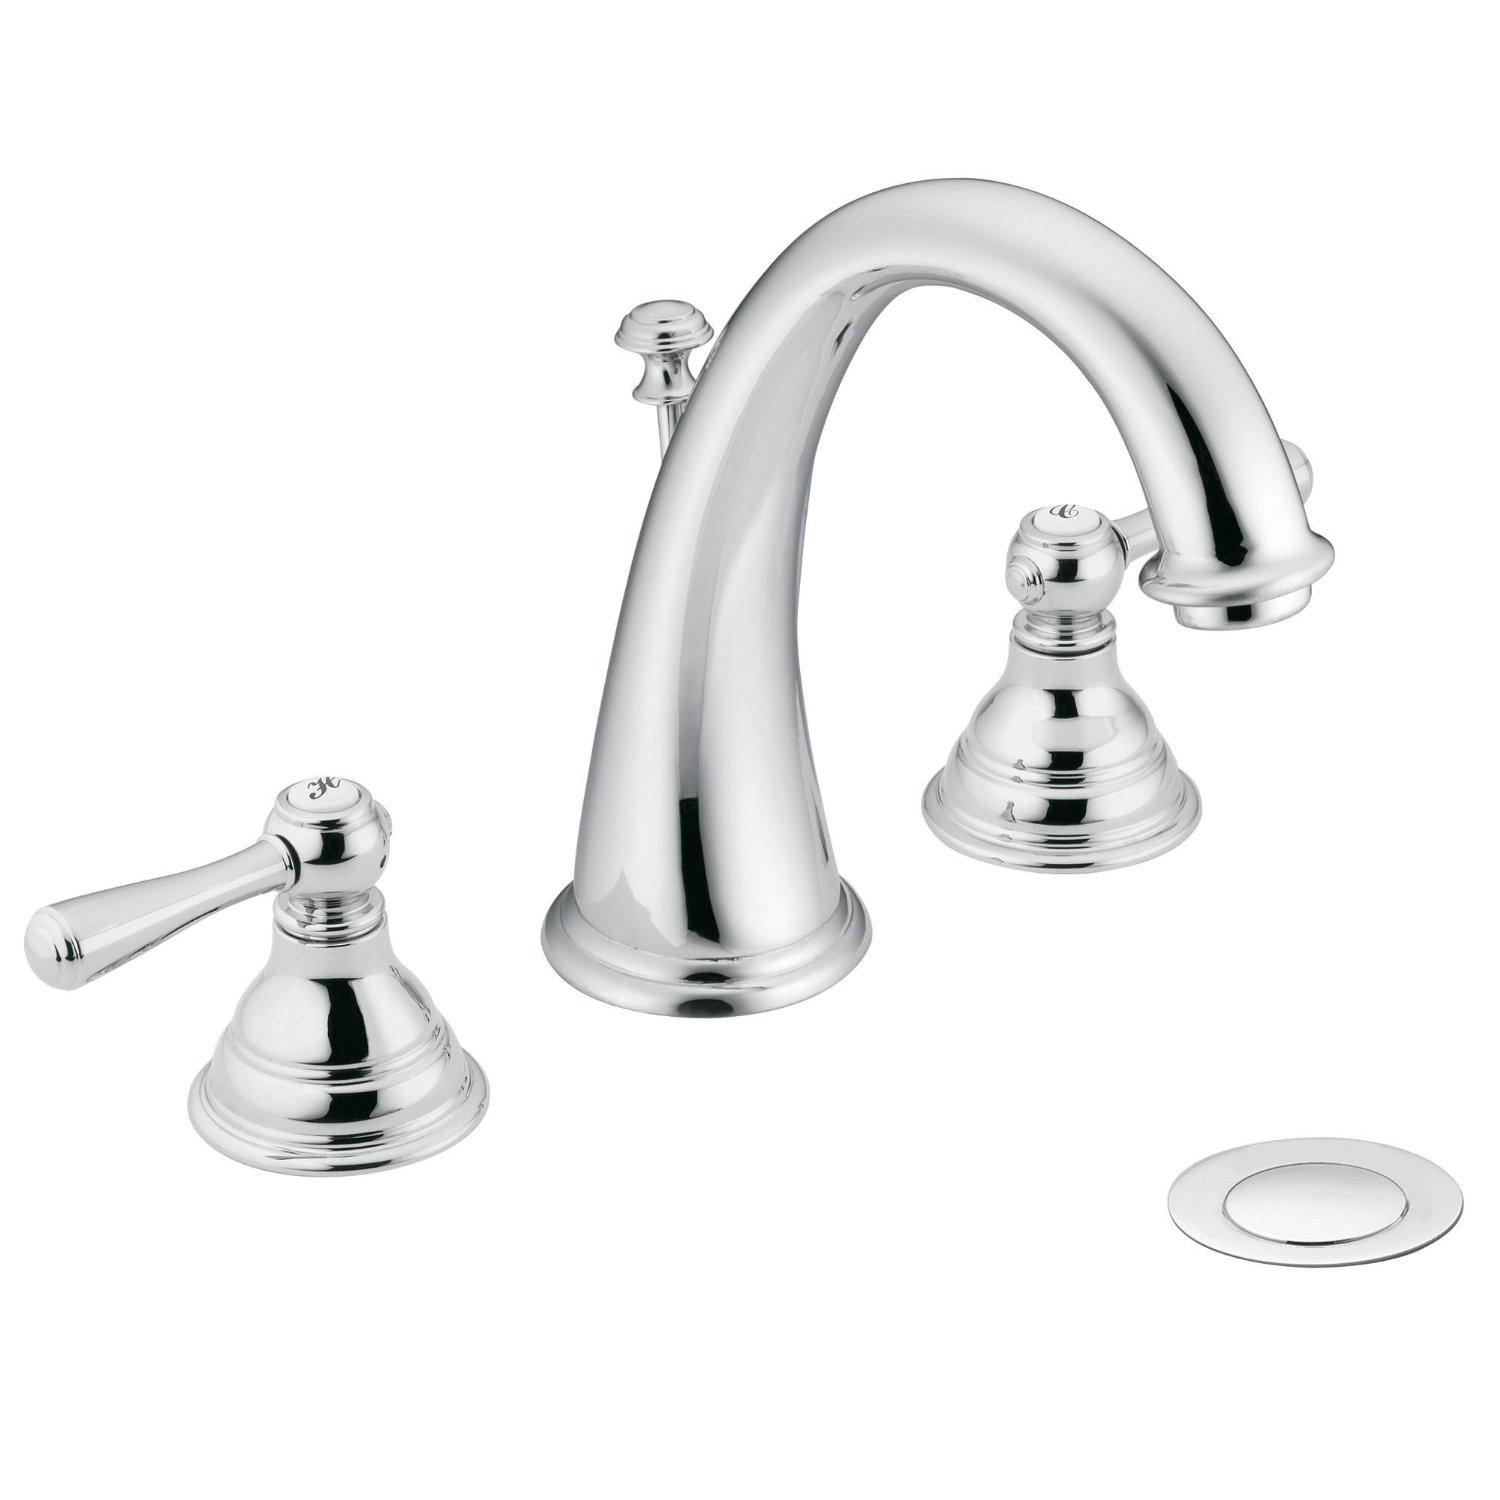 Faucet Repair And Moen Single Handle